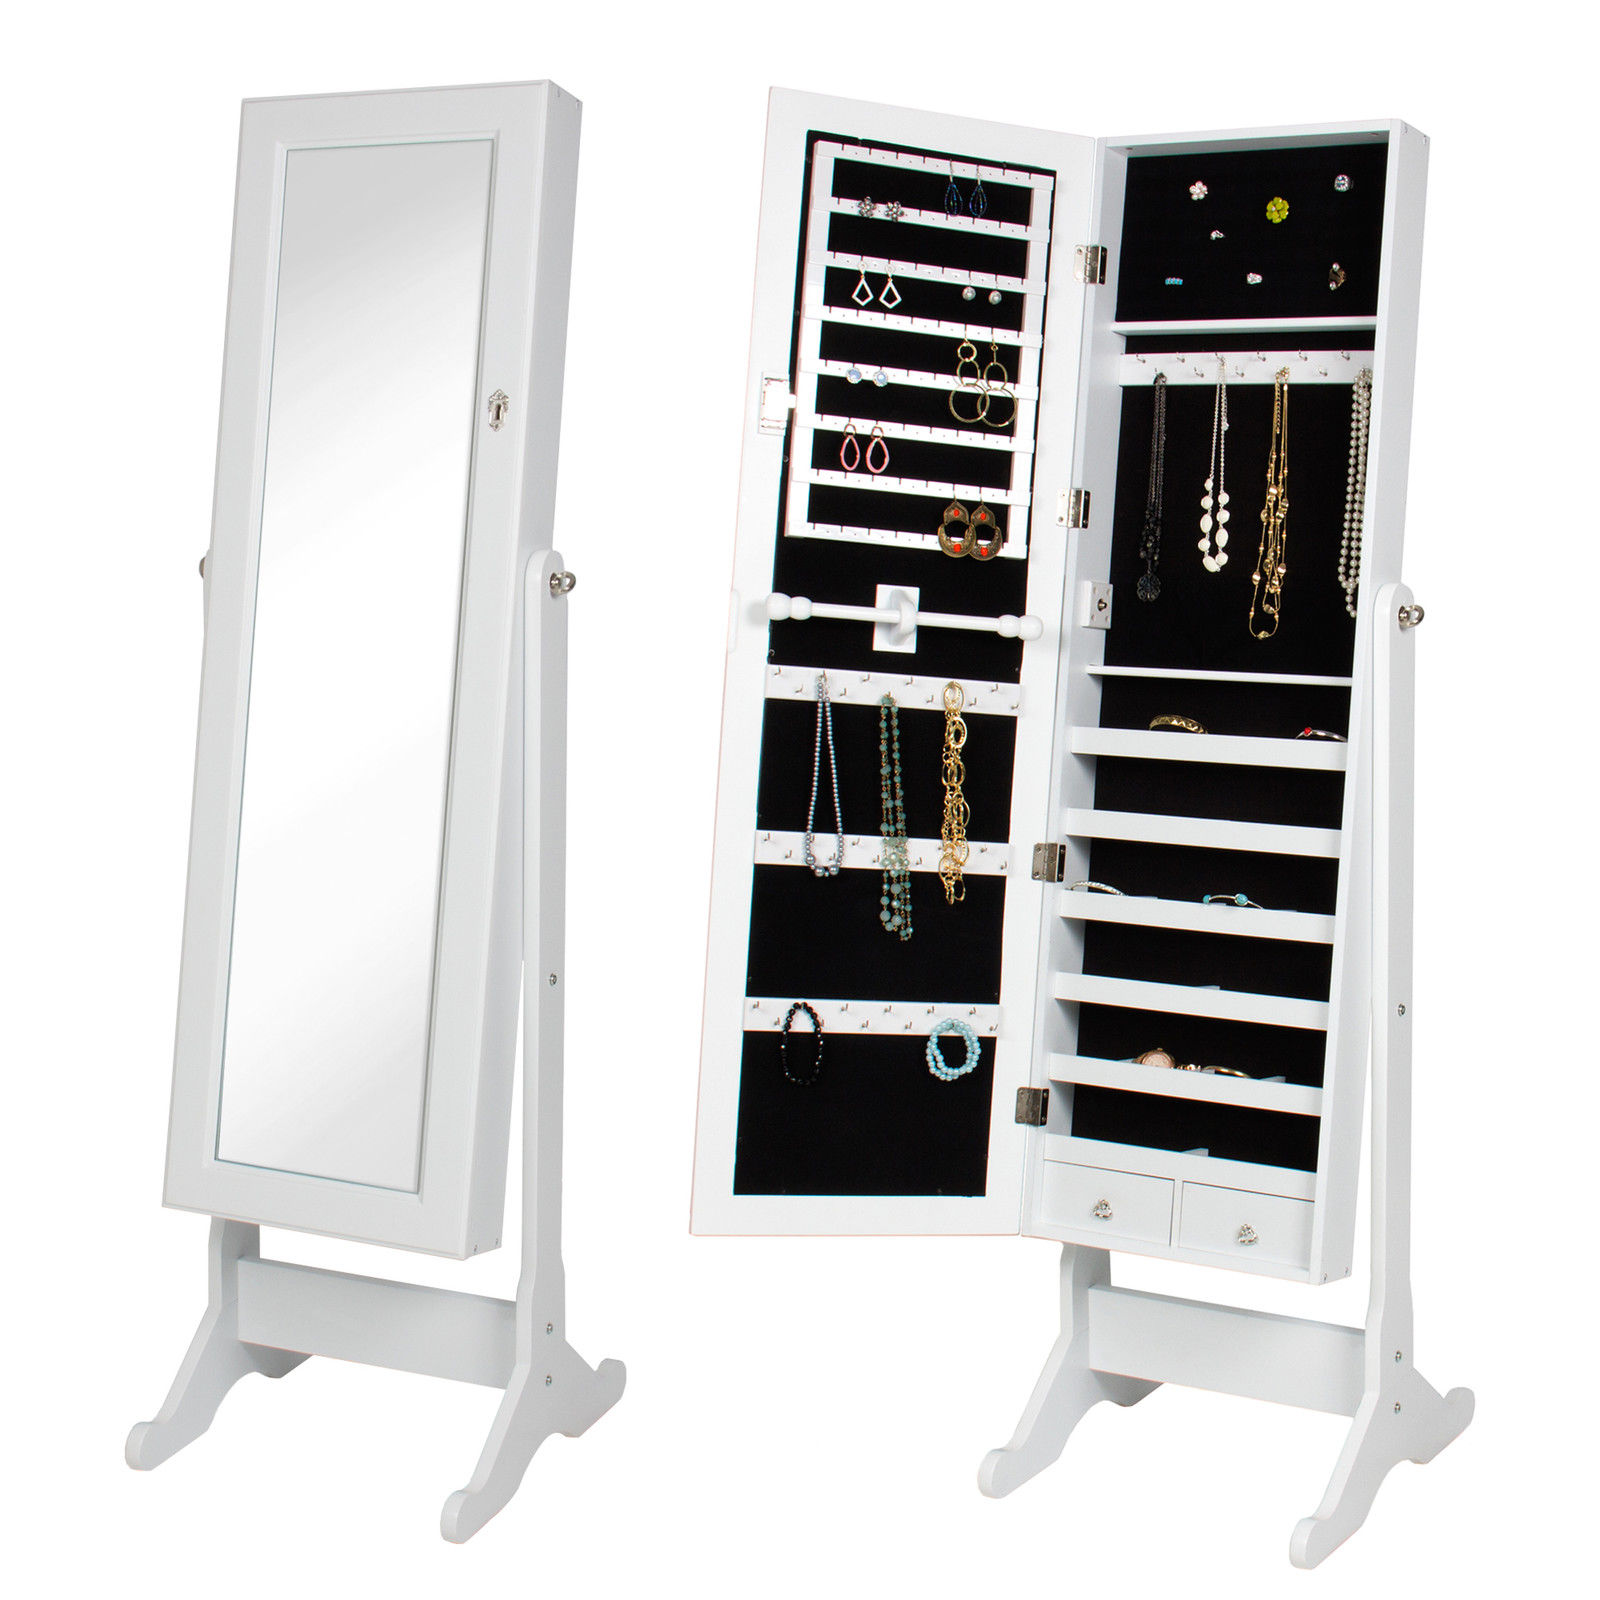 Mirrored Jewelry Cabinet Armoire Mirrored Jewelry Cabinet Amoire Storage Box W Stand Mirror